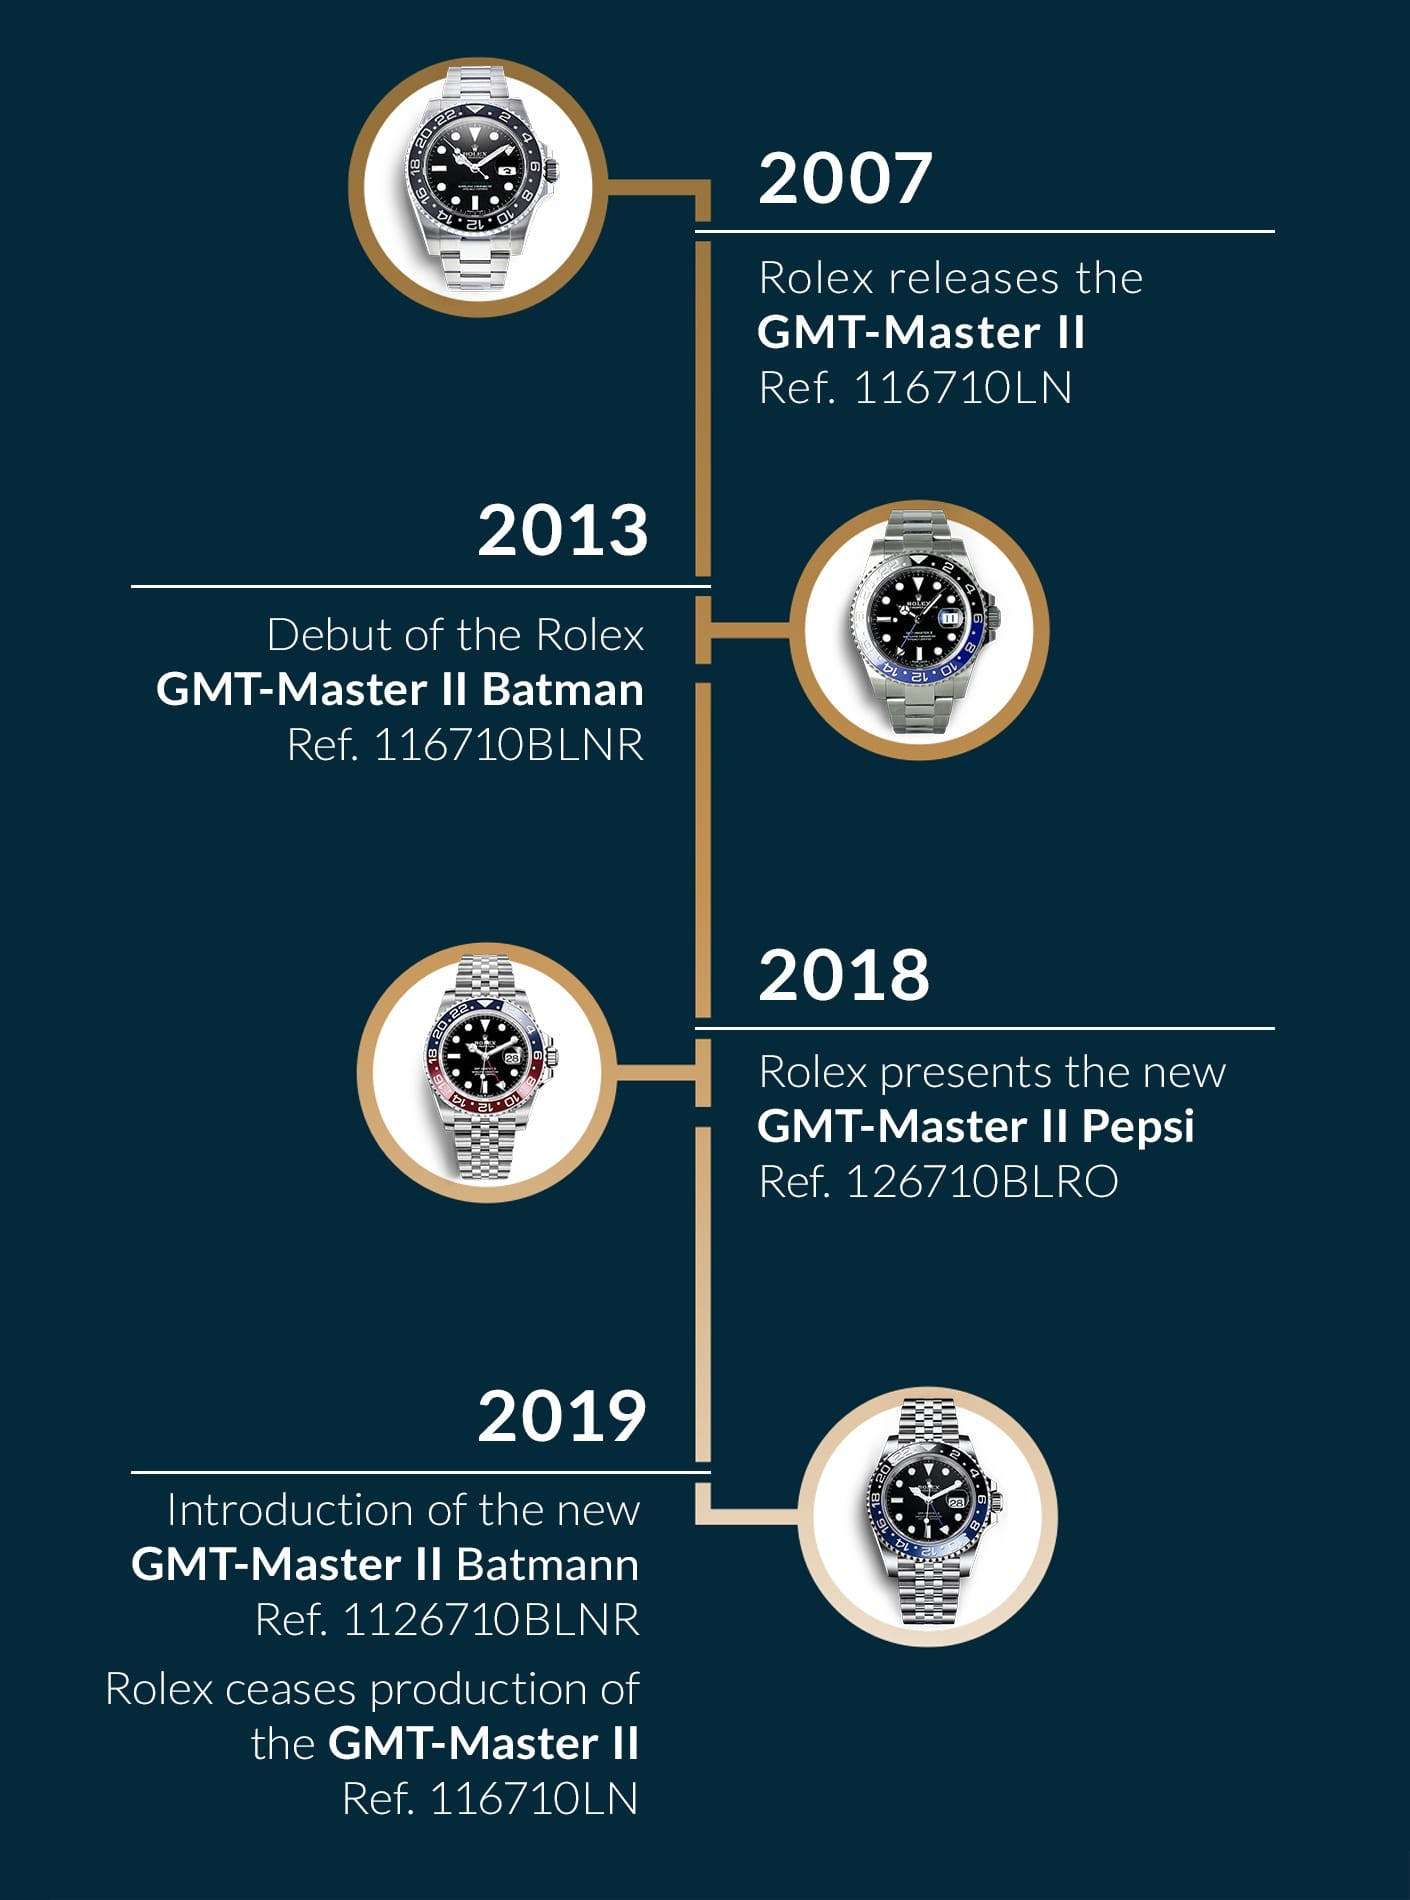 The History of the GMT-Master II 116710 and Its Successor (2007-2019)